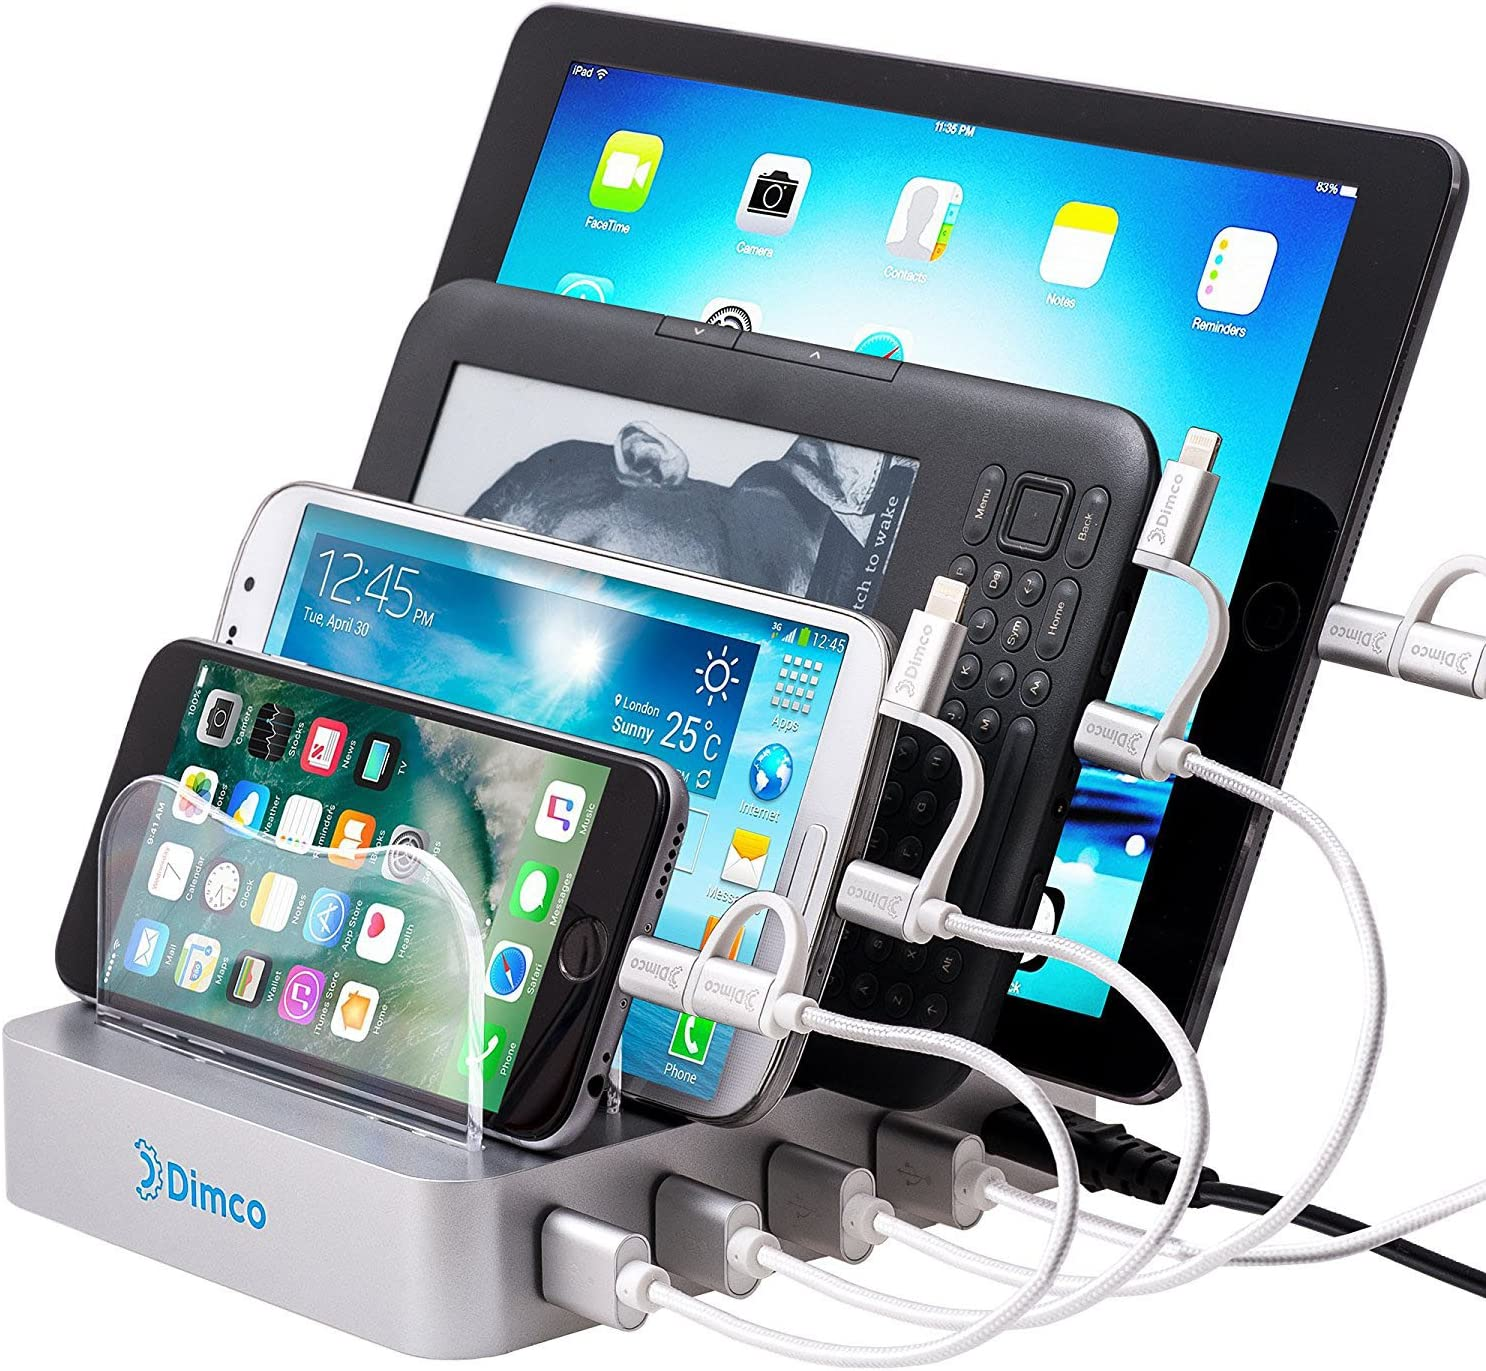 Dimco USB Fast Charging Station Compatible with Apple iPhone iPad Smart Charging Station Android 4 Port Multiple Charger Fire Tablet Micro USB